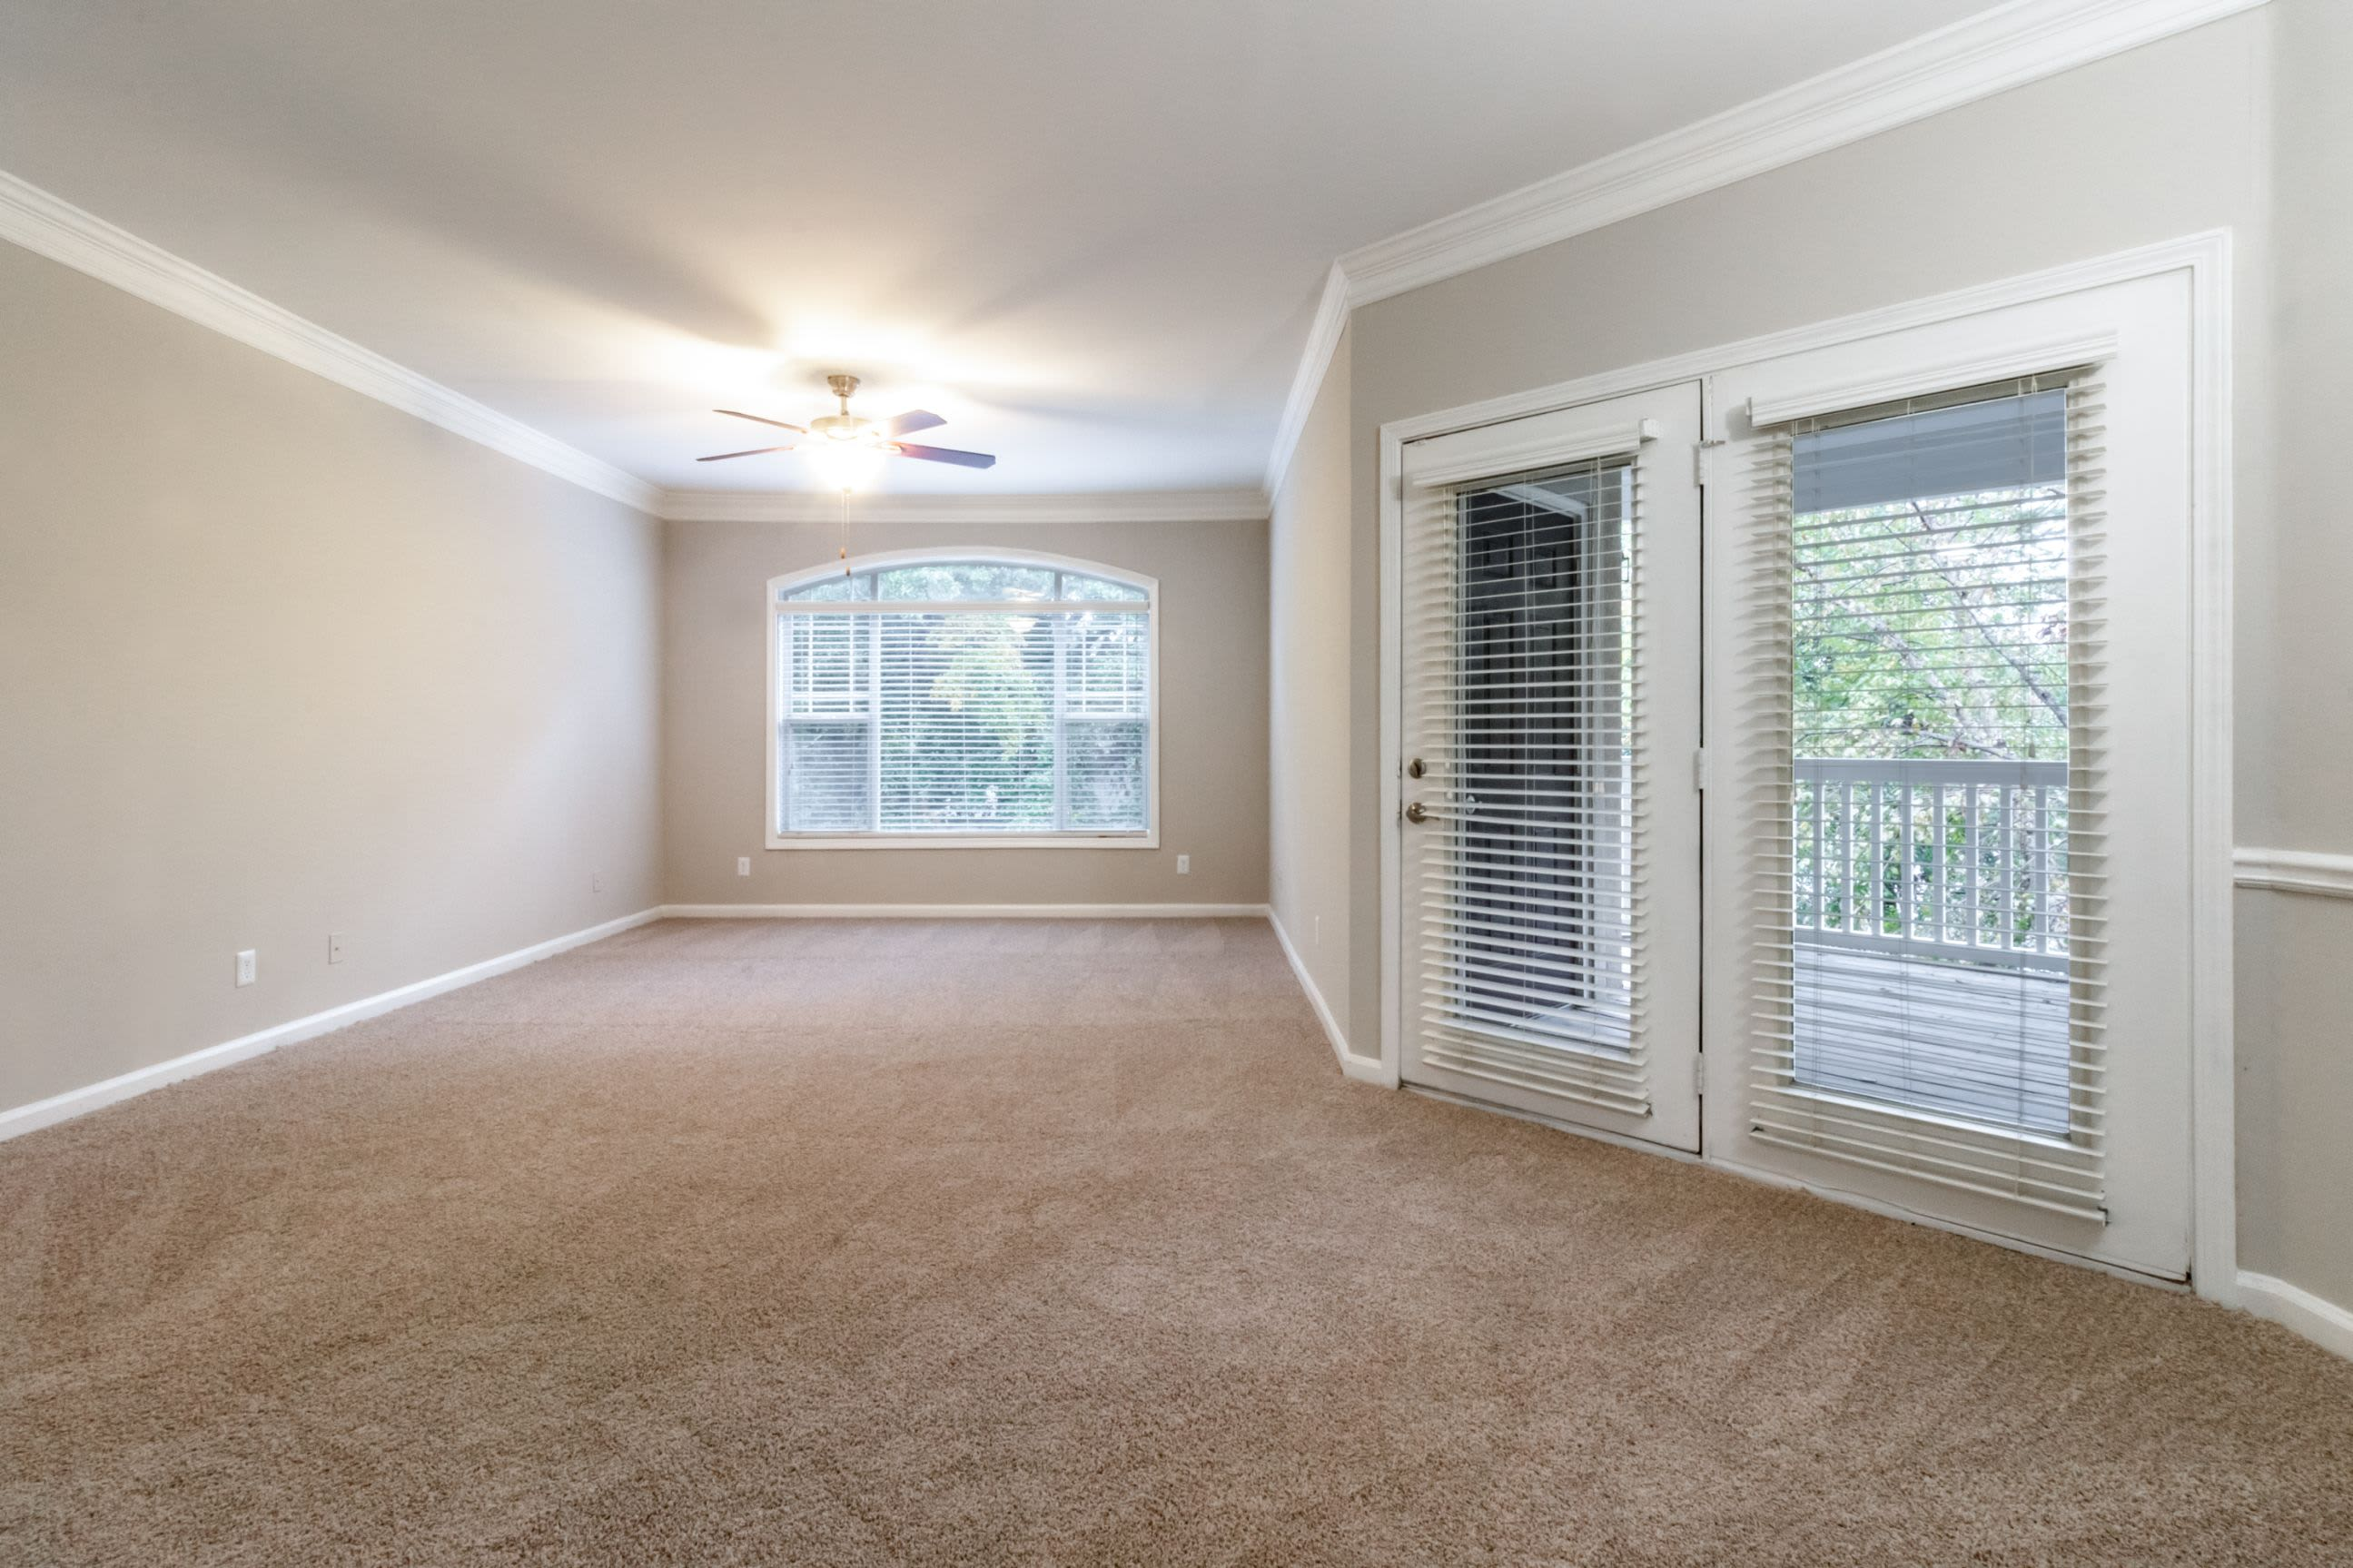 Spacious room with door to private patio at Marquis Midtown West in Atlanta, Georgia